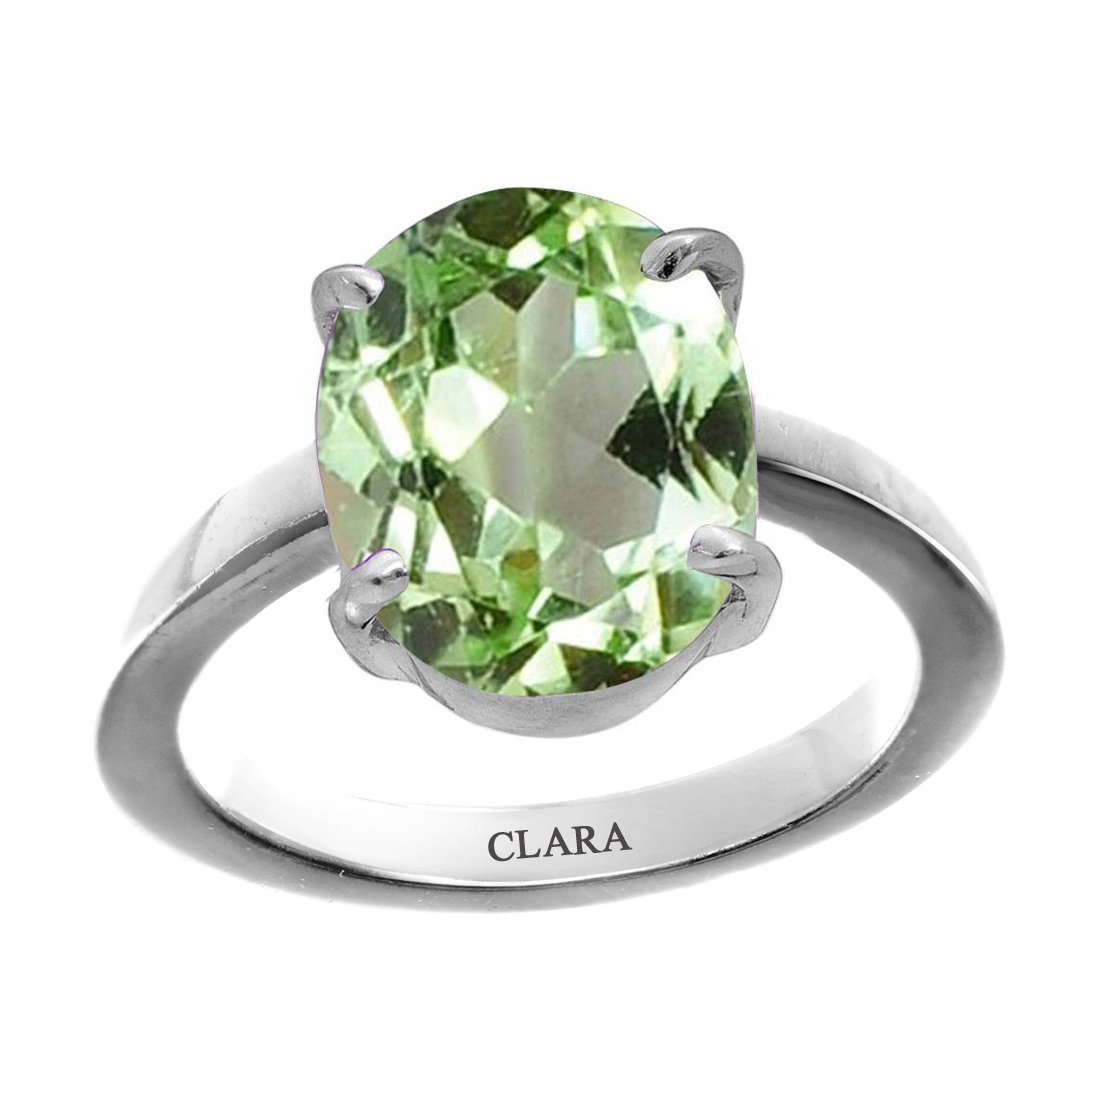 Clara Certified Peridot 7.5cts or 8.25ratti original stone Sterling Silver Astrological Ring for Men and Women